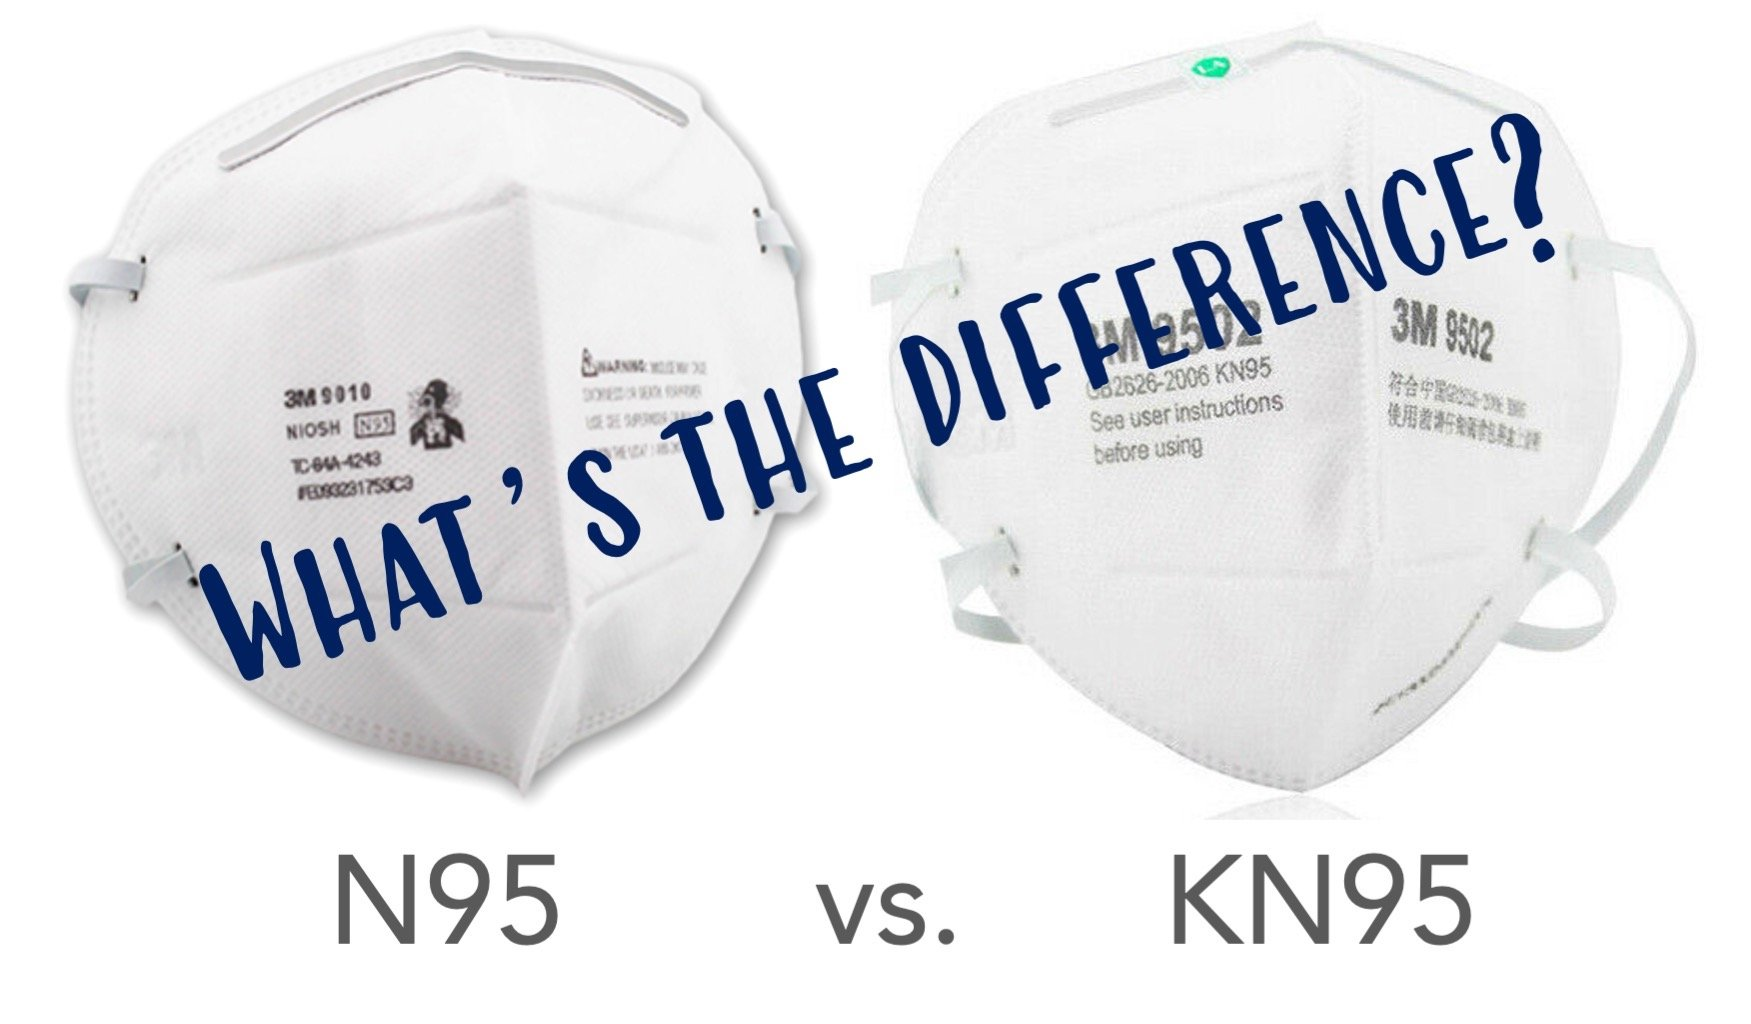 What's The Difference Between N95 and KN95 Masks? - Smart Air